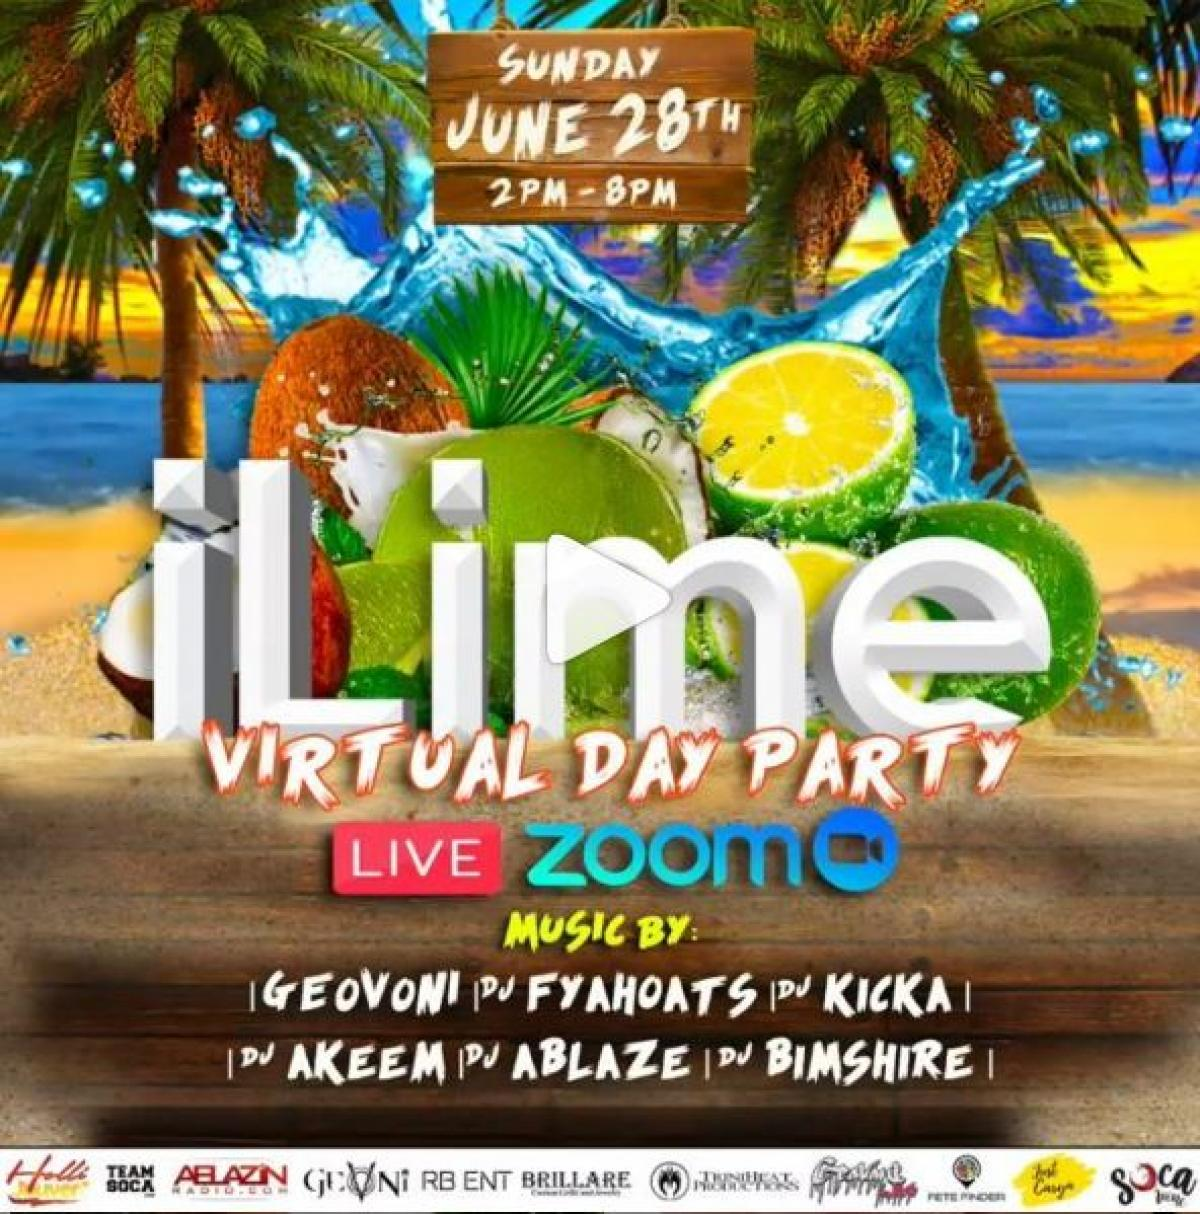 ILime Virtual Day Party flyer or graphic.